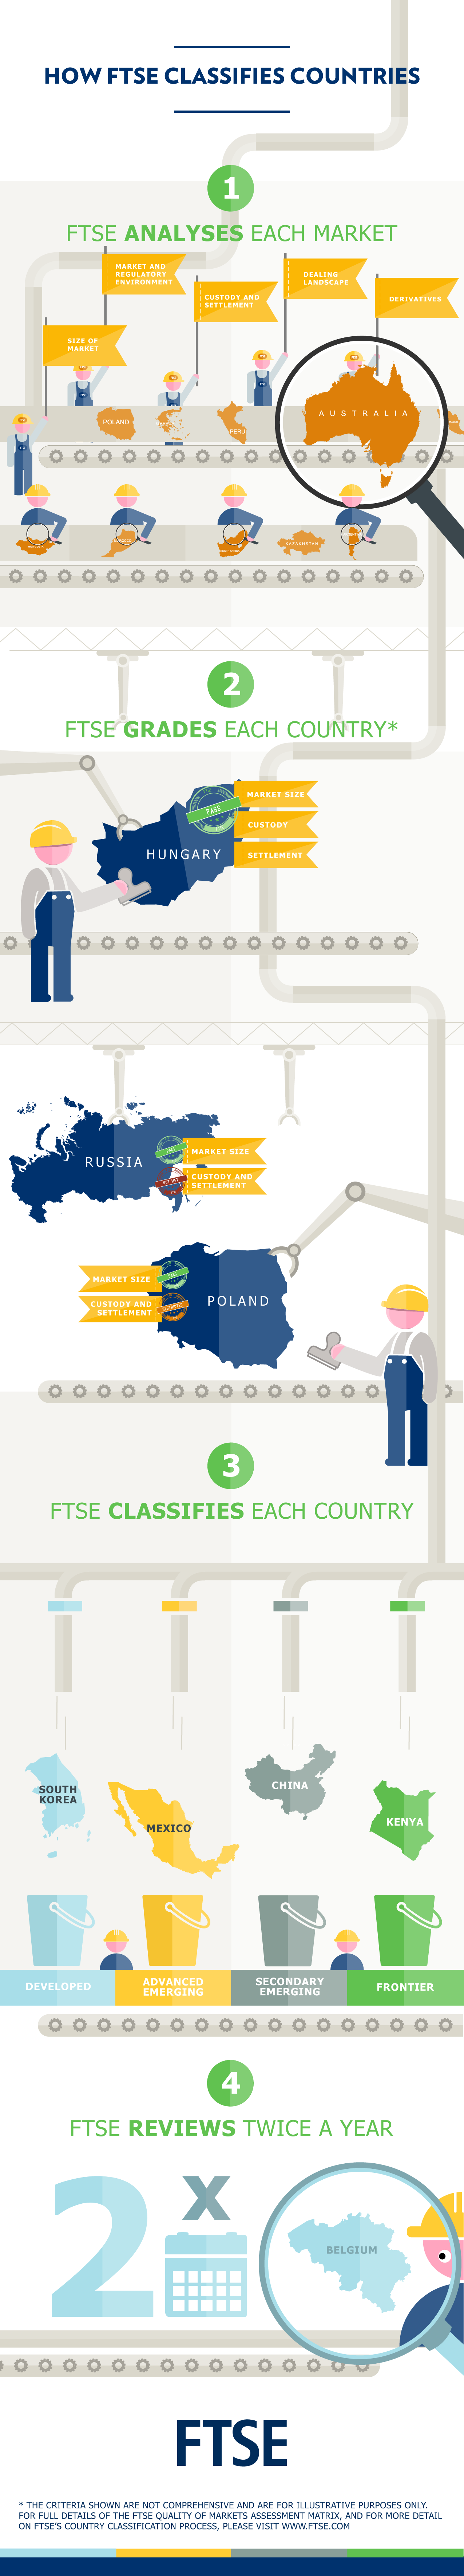 Ftse how ftse derives country classifications for investors final